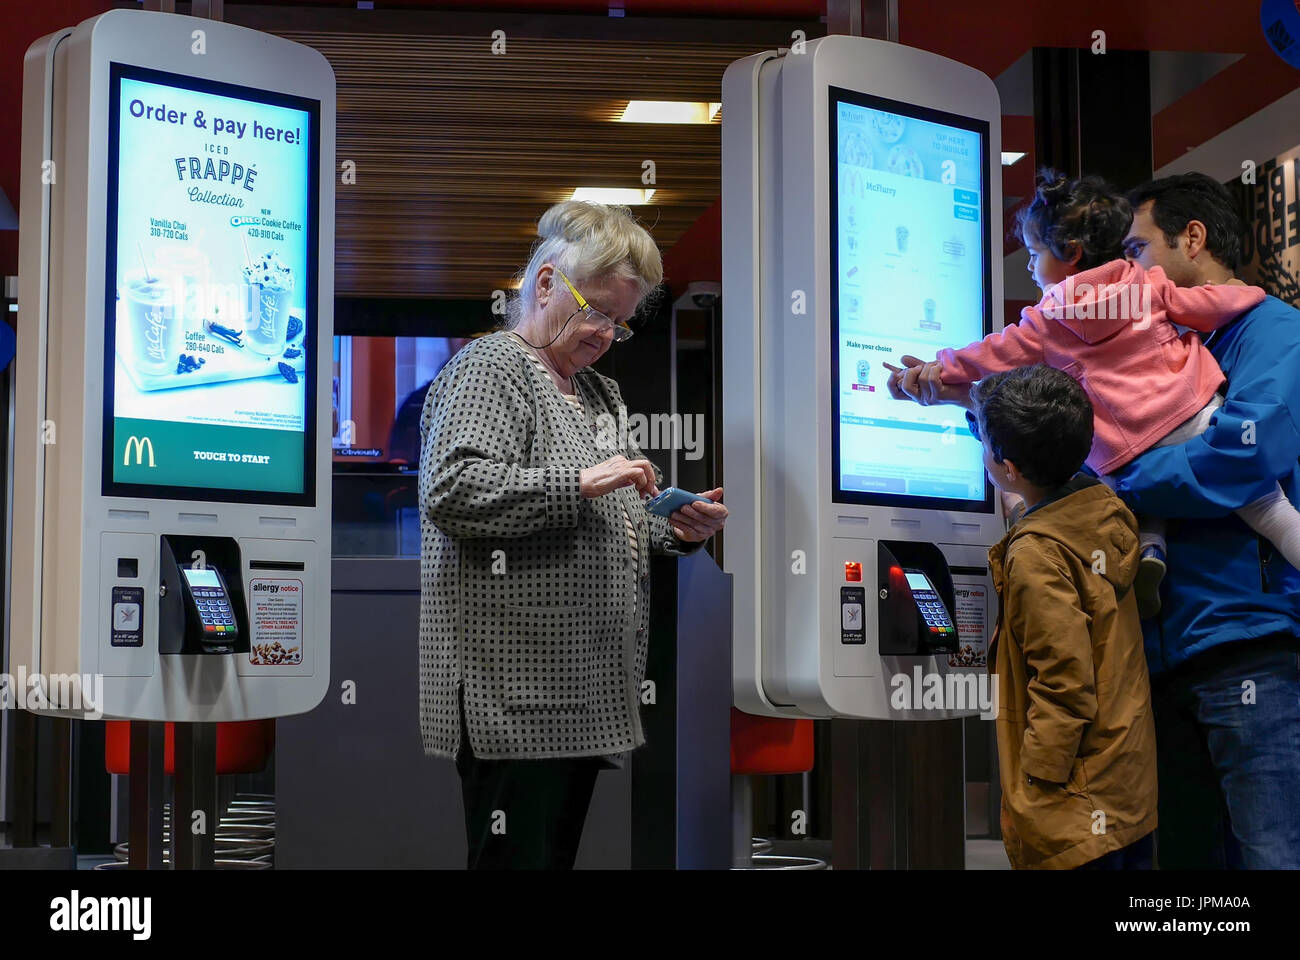 Coquitlam, BC, Canada - April 11, 2017 : Family ordering food at self check out machine and old lady playing cellphone at Mcdonalds restaurant - Stock Image